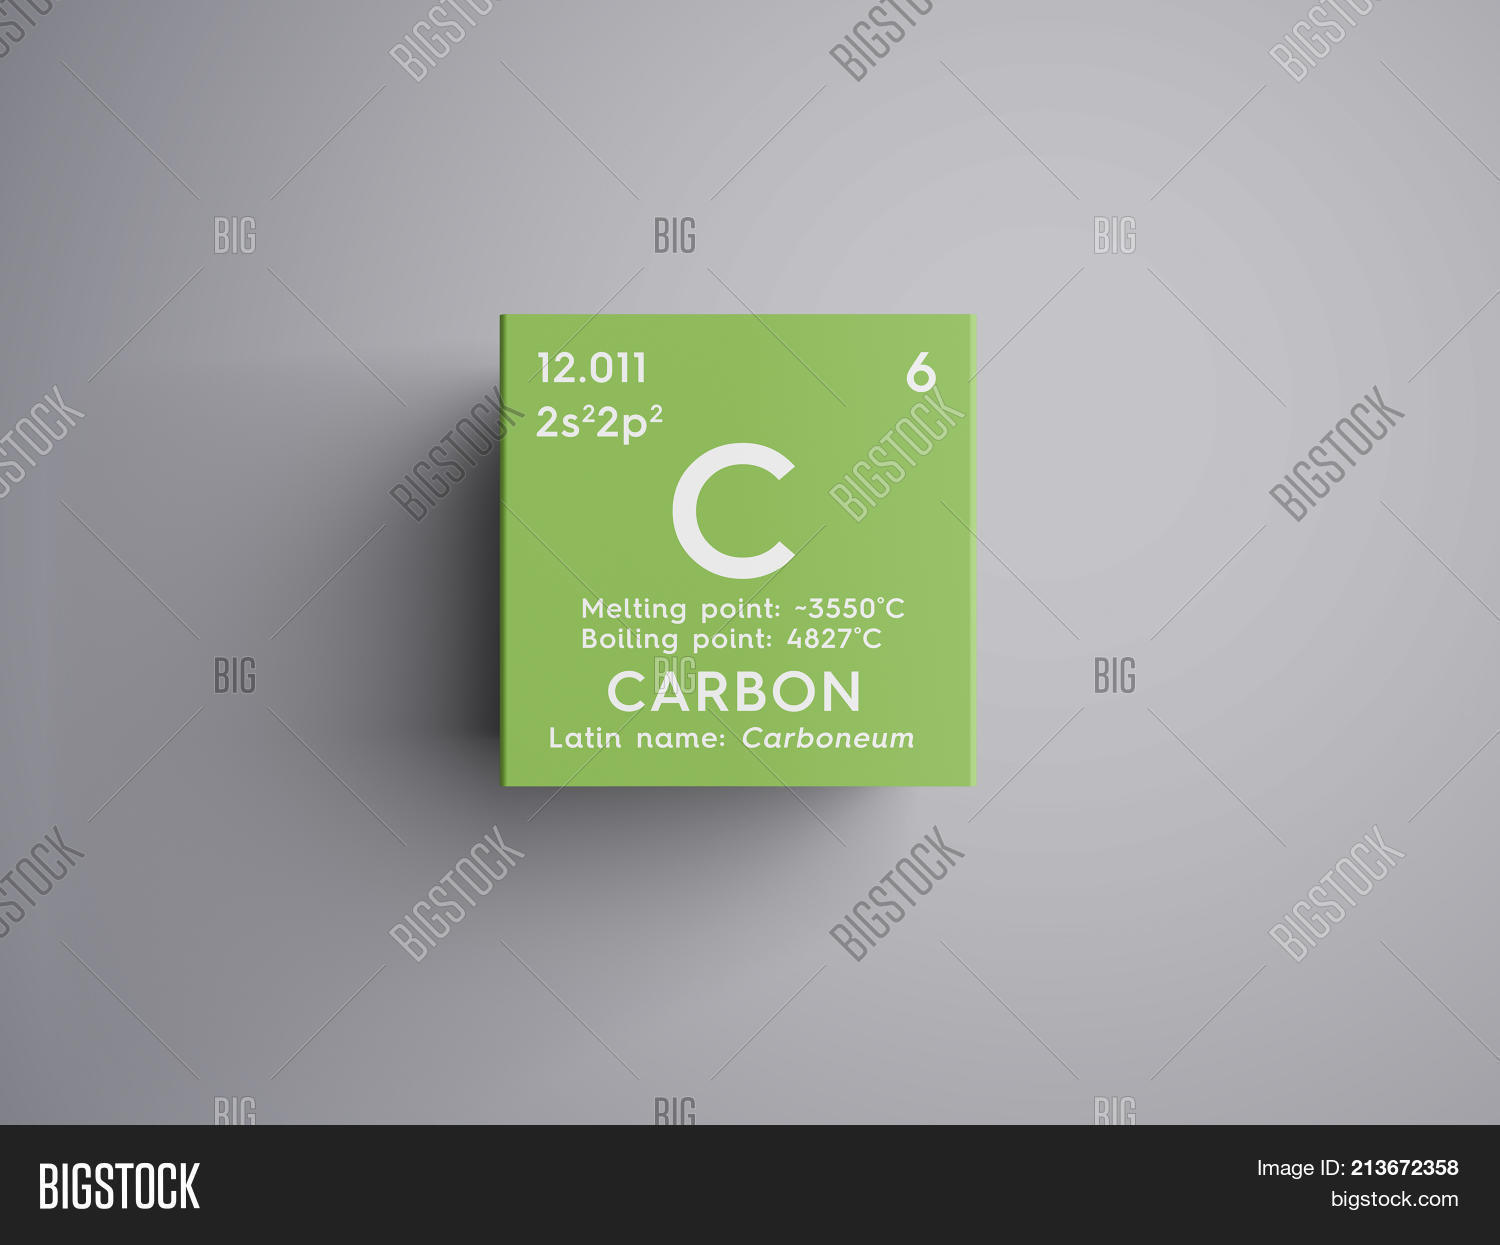 Carbon Other Image Photo Free Trial Bigstock